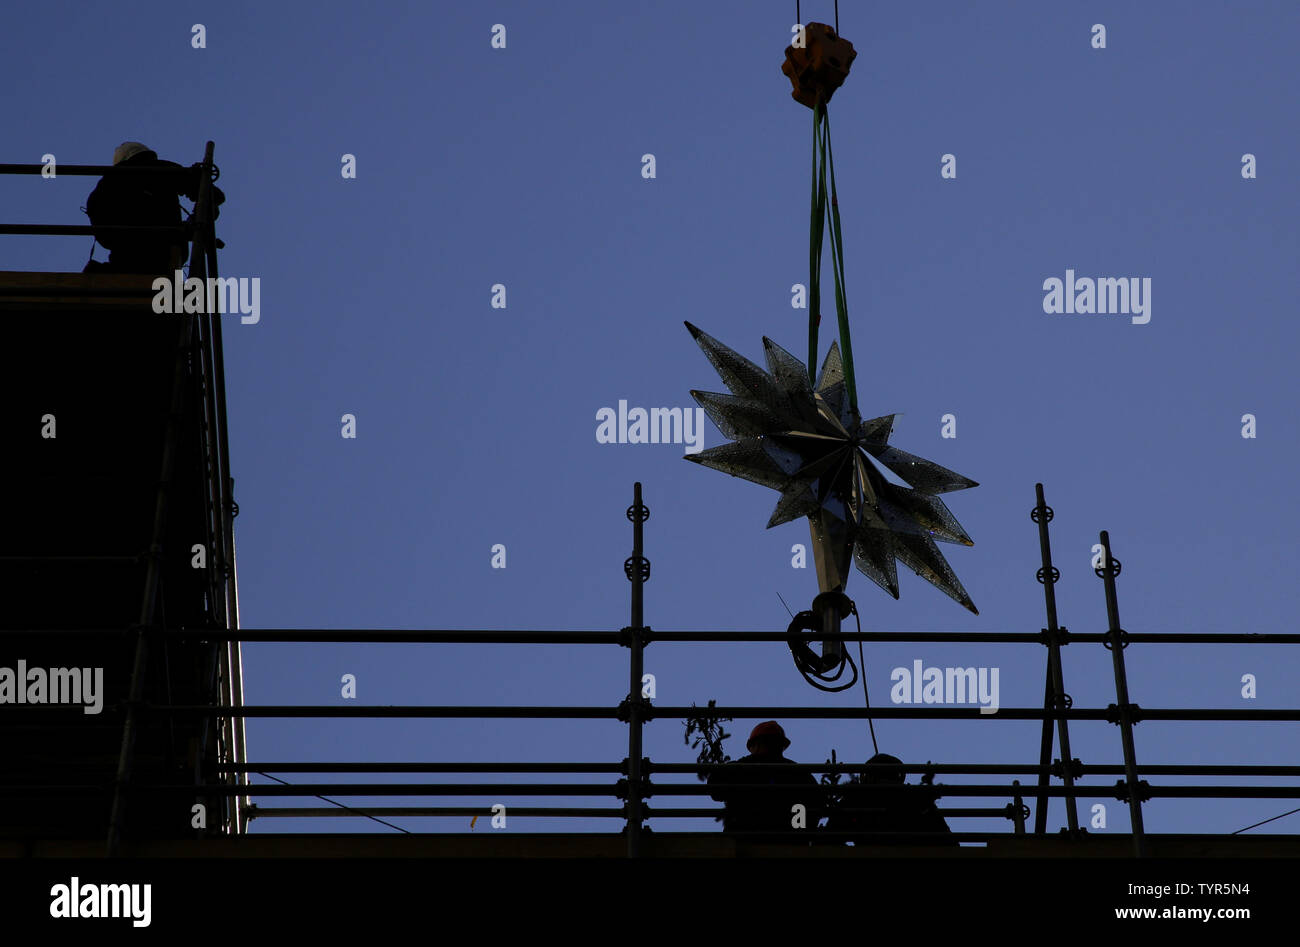 Workers help position The Swarovski Star when it is raised by crane to the top of the world-famous Rockefeller Center Christmas tree on November 16, 2015 in New York City. 2015 marks the 12th year the Swarovski Star will adorn the Rockefeller Center Christmas tree. The Star is comprised of 25,000 crystals, with one million facets, and measures 9 and 1/2 feet in diameter and 1 1/2 feet deep. The Star weighs 550 pounds, including 300 pounds of crystal panels, and is composed of six outer rays and six smaller inner rays.       Photo by John Angelillo/UPI Stock Photo